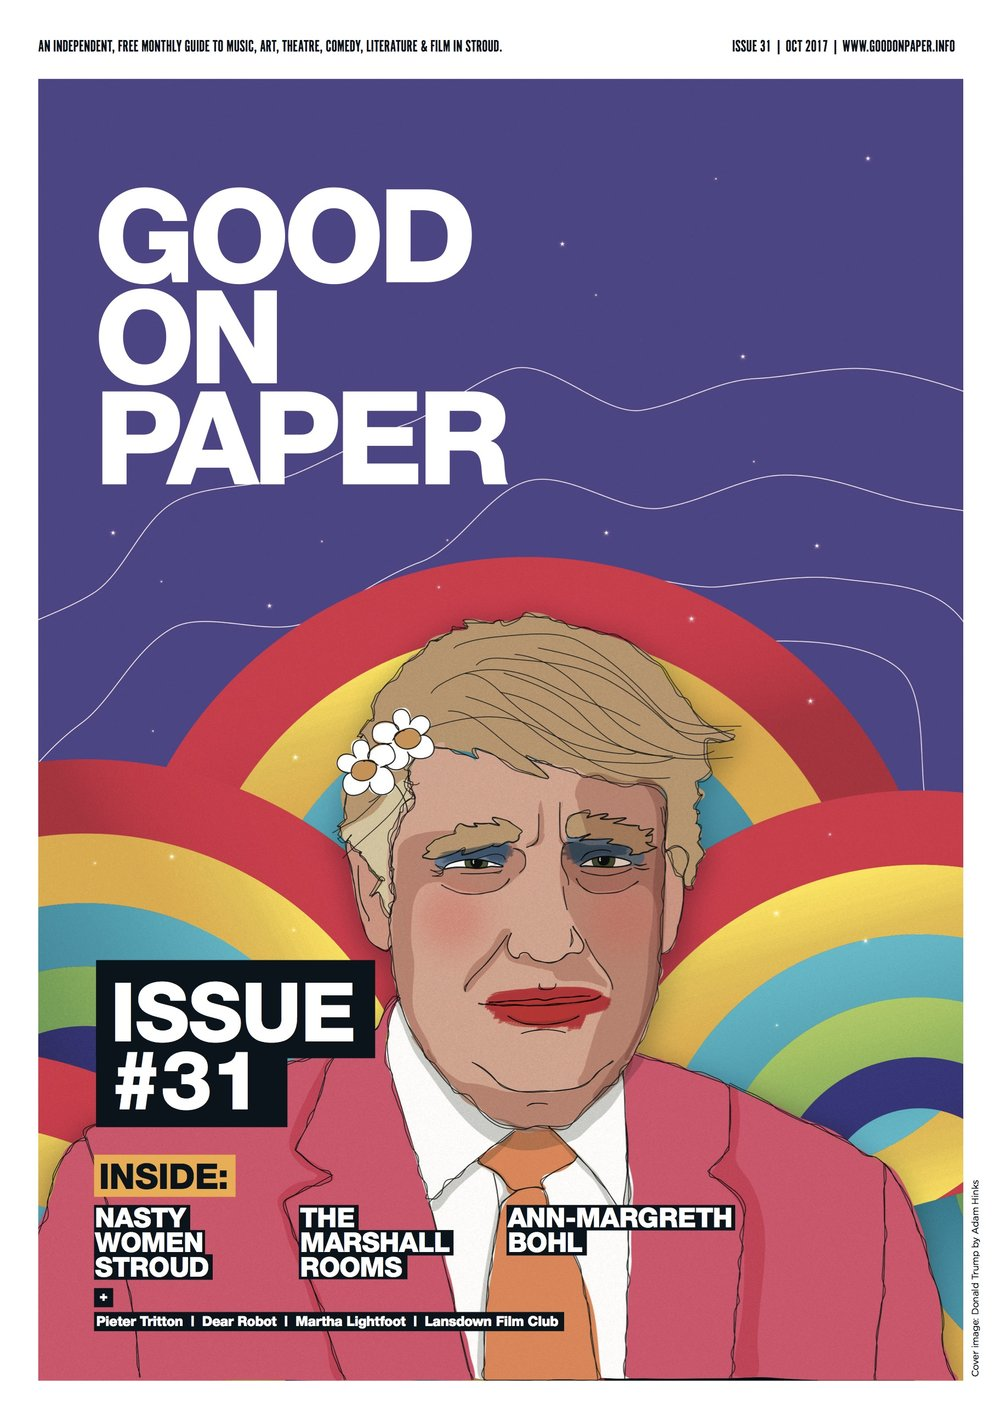 Issue 31